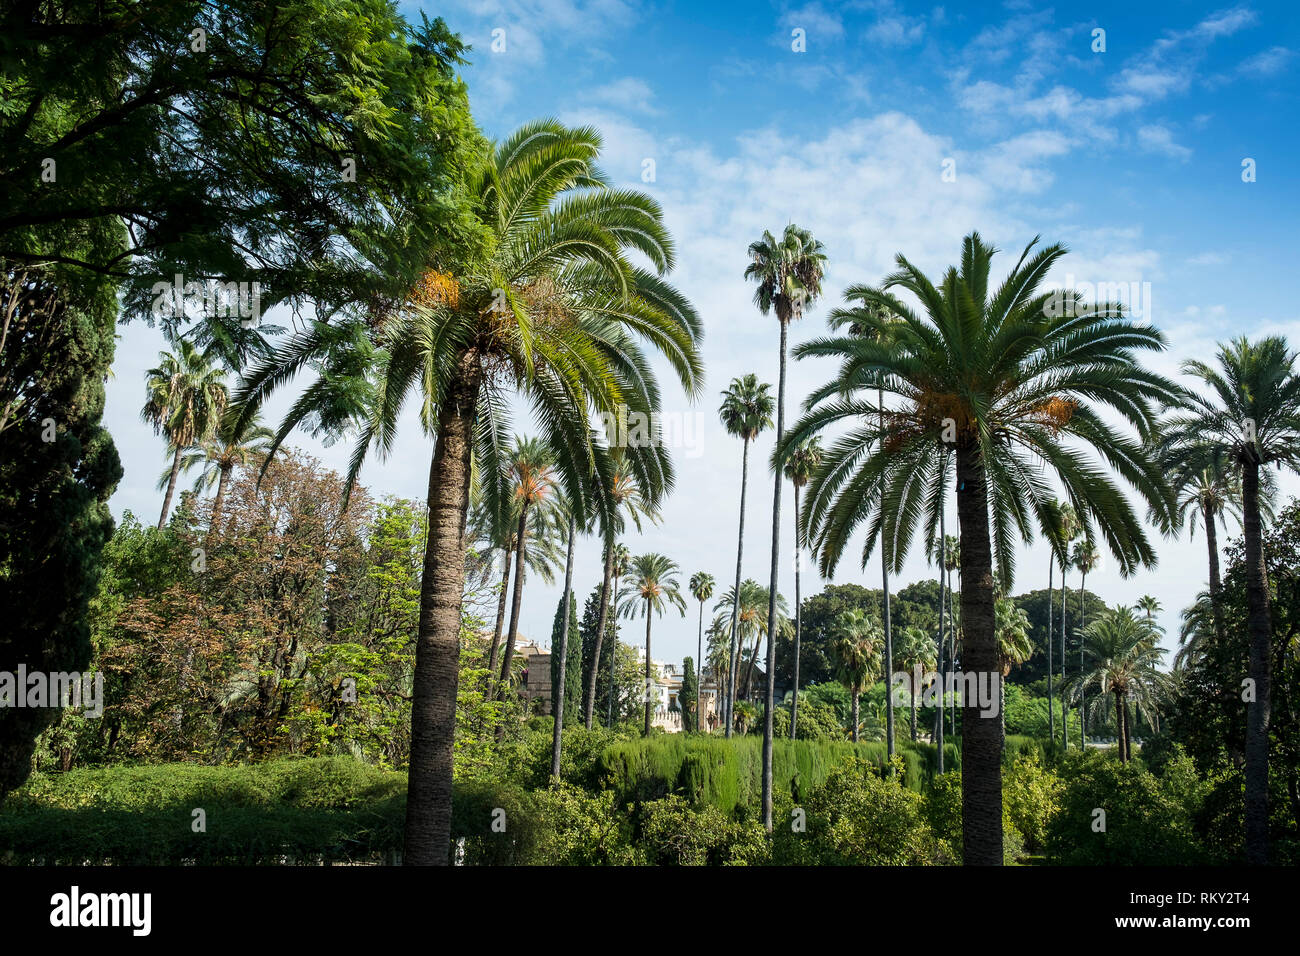 Palm trees in the Mudejar style gardens of the Royal Alcazar Palace, Seville, Spain. - Stock Image